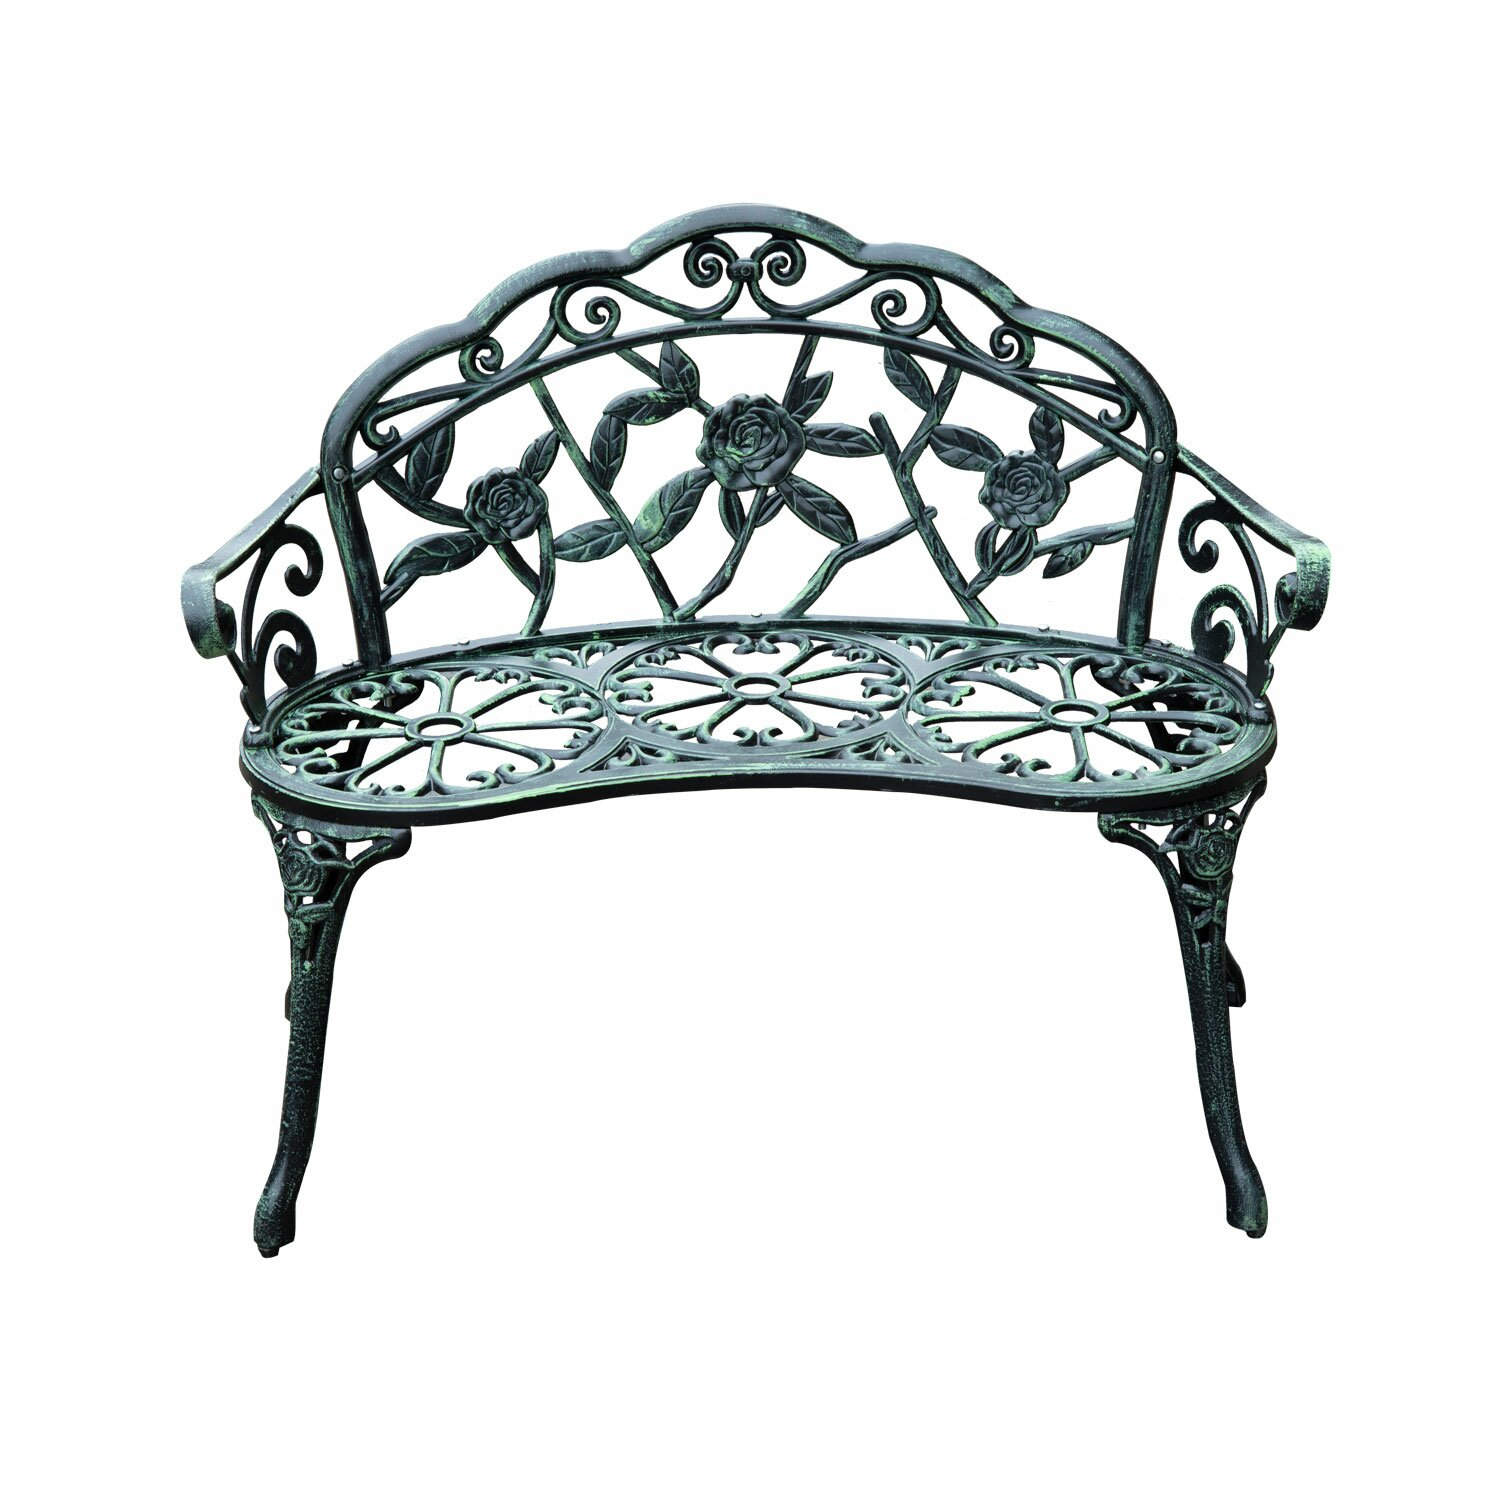 Outsunny Cast Iron Antique Outdoor Patio Garden Bench Reviews Wayfair